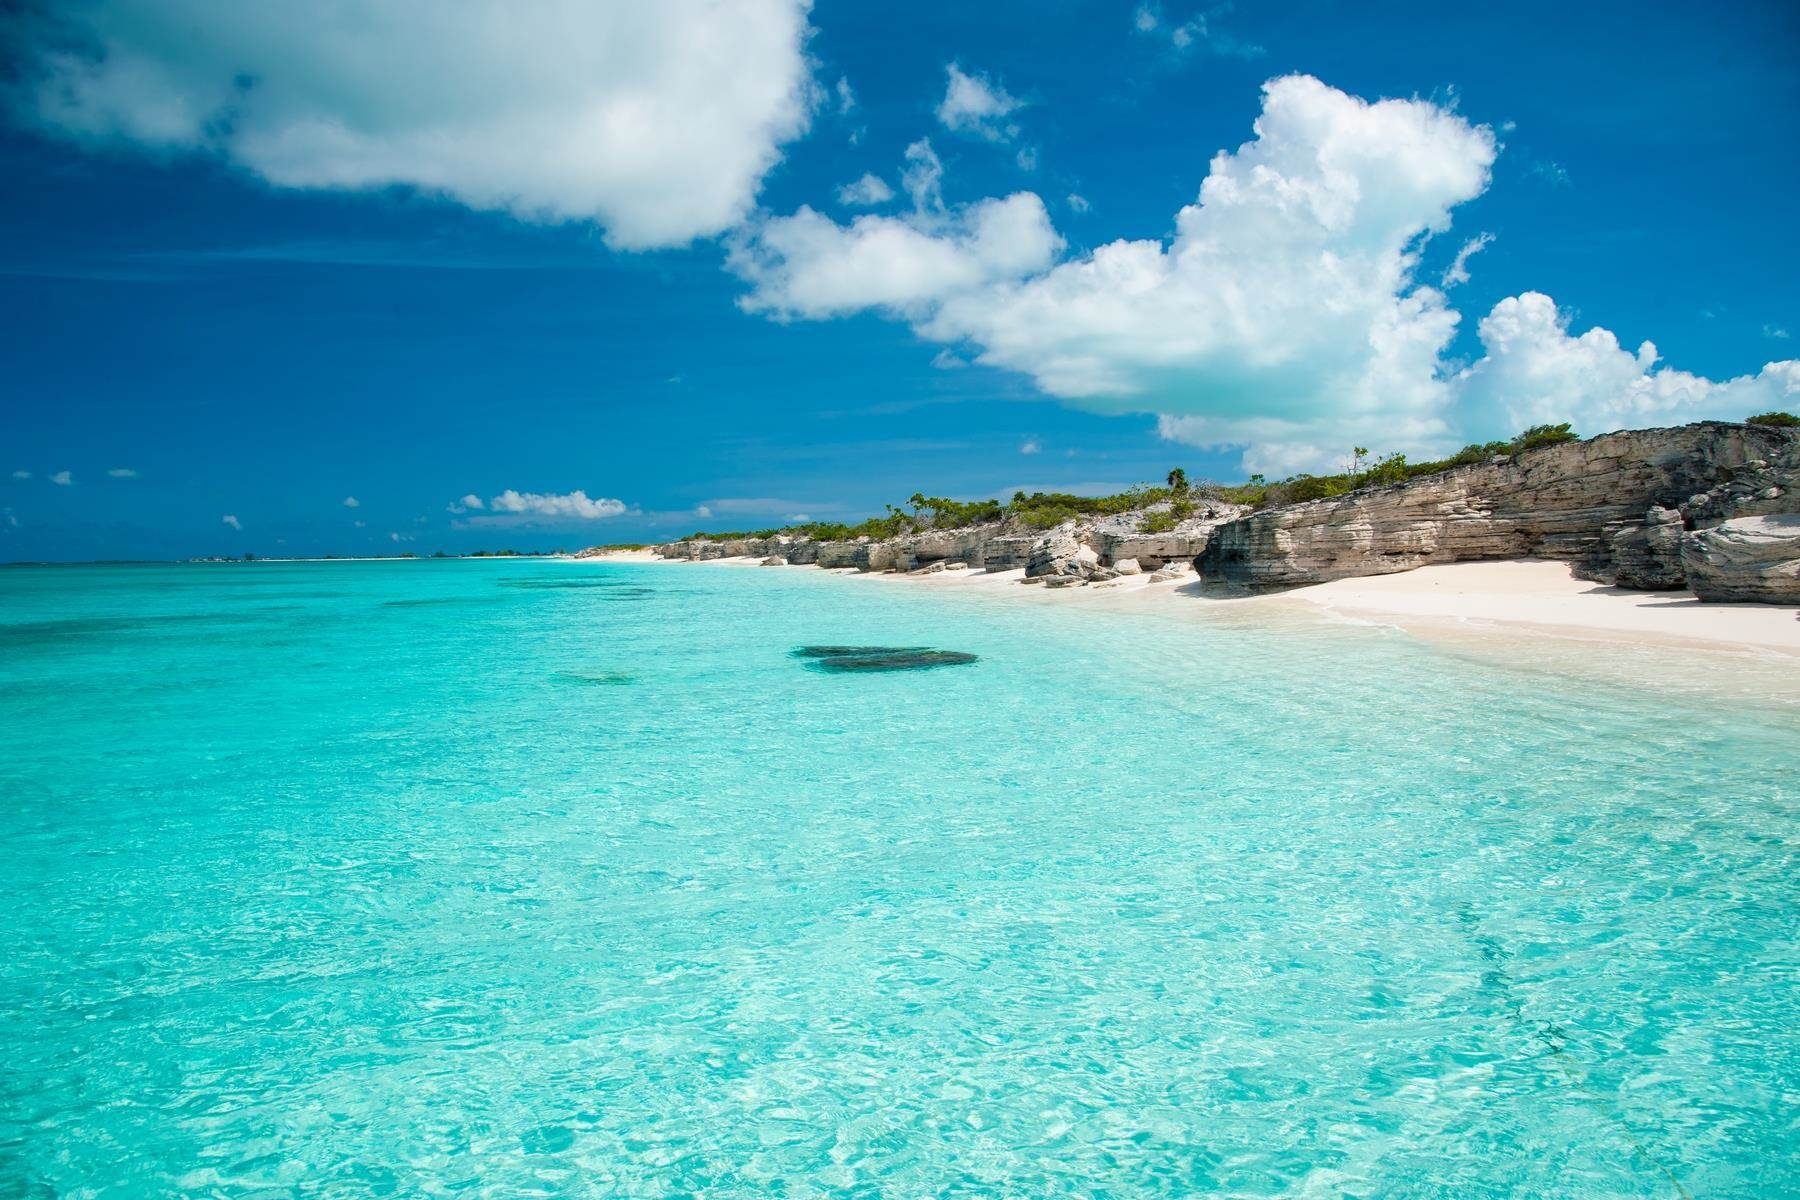 Water Cay, Turks and Caicos